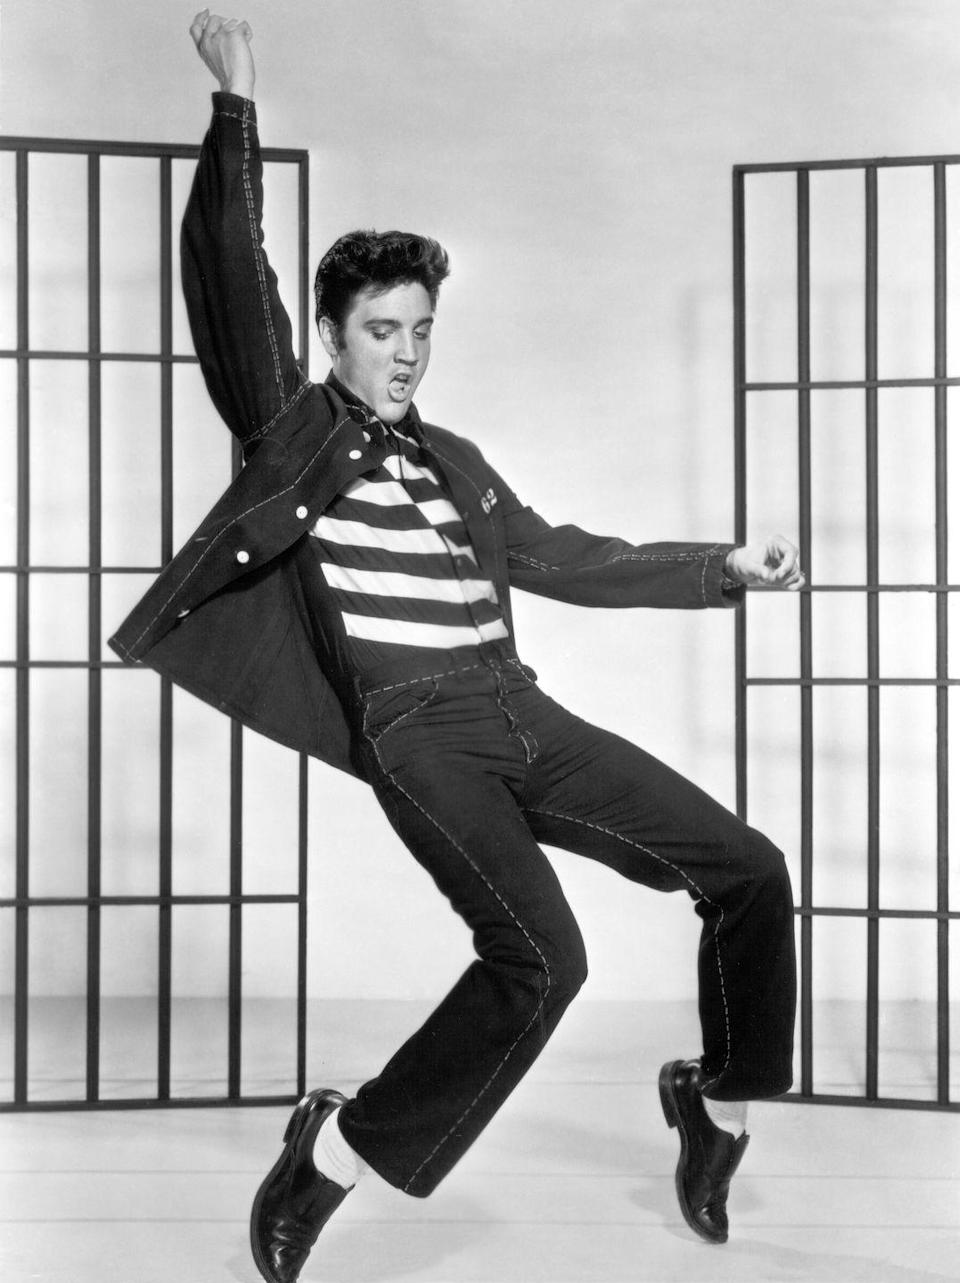 """<p>One of Presley's most famous songs was """"Jailhouse Rock,"""" which he recorded for the 1957 film of the same title. Here, he poses for a promotional shoot for the movie.</p>"""